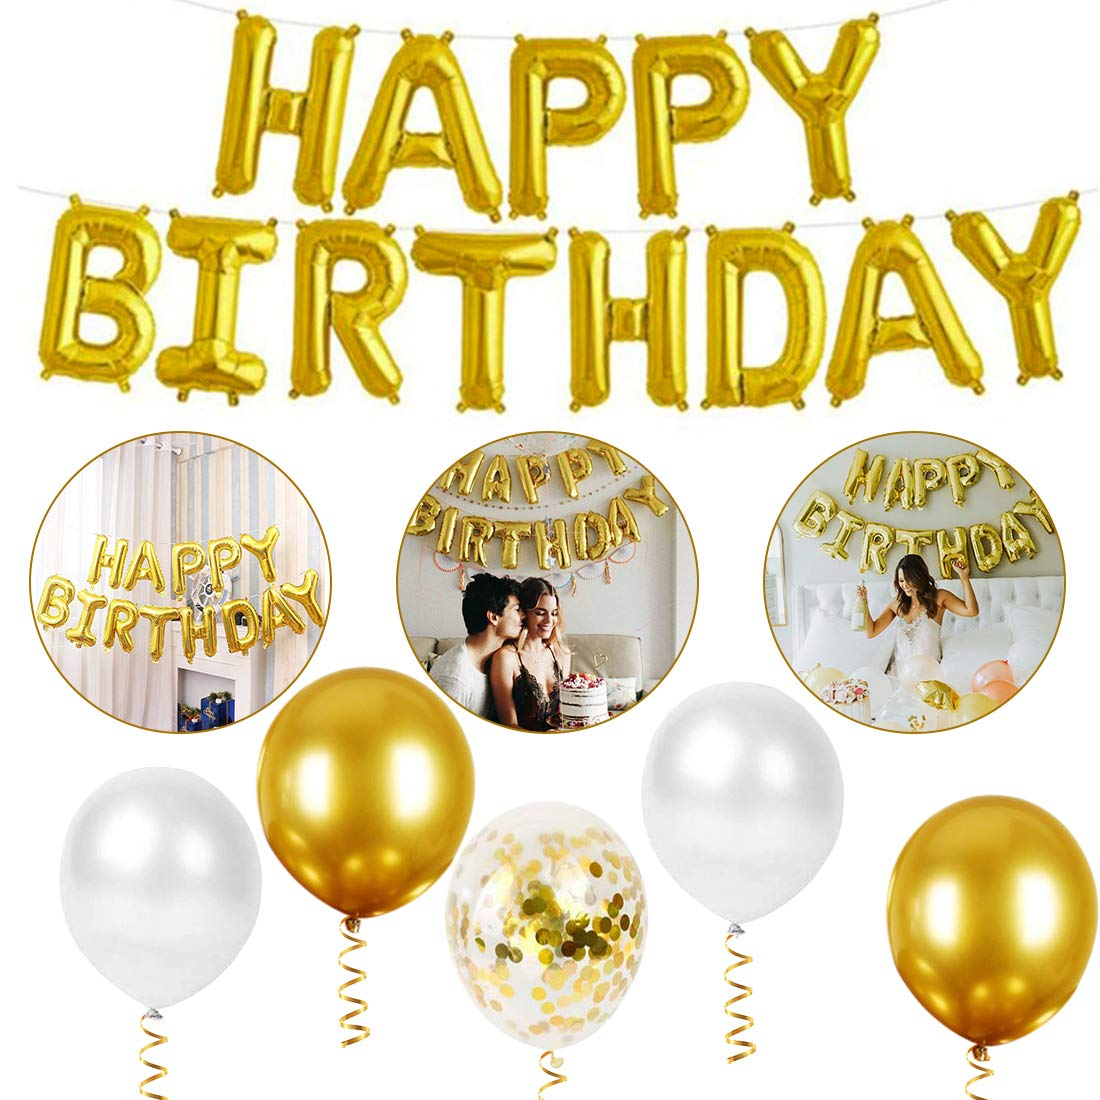 Happy Birthday Balloons Gold Banner O-Kinee Gold Birthday Party Decorations for Women Men Gold Balloon Kit for Women Men Birthday Anniversary Party Supplies